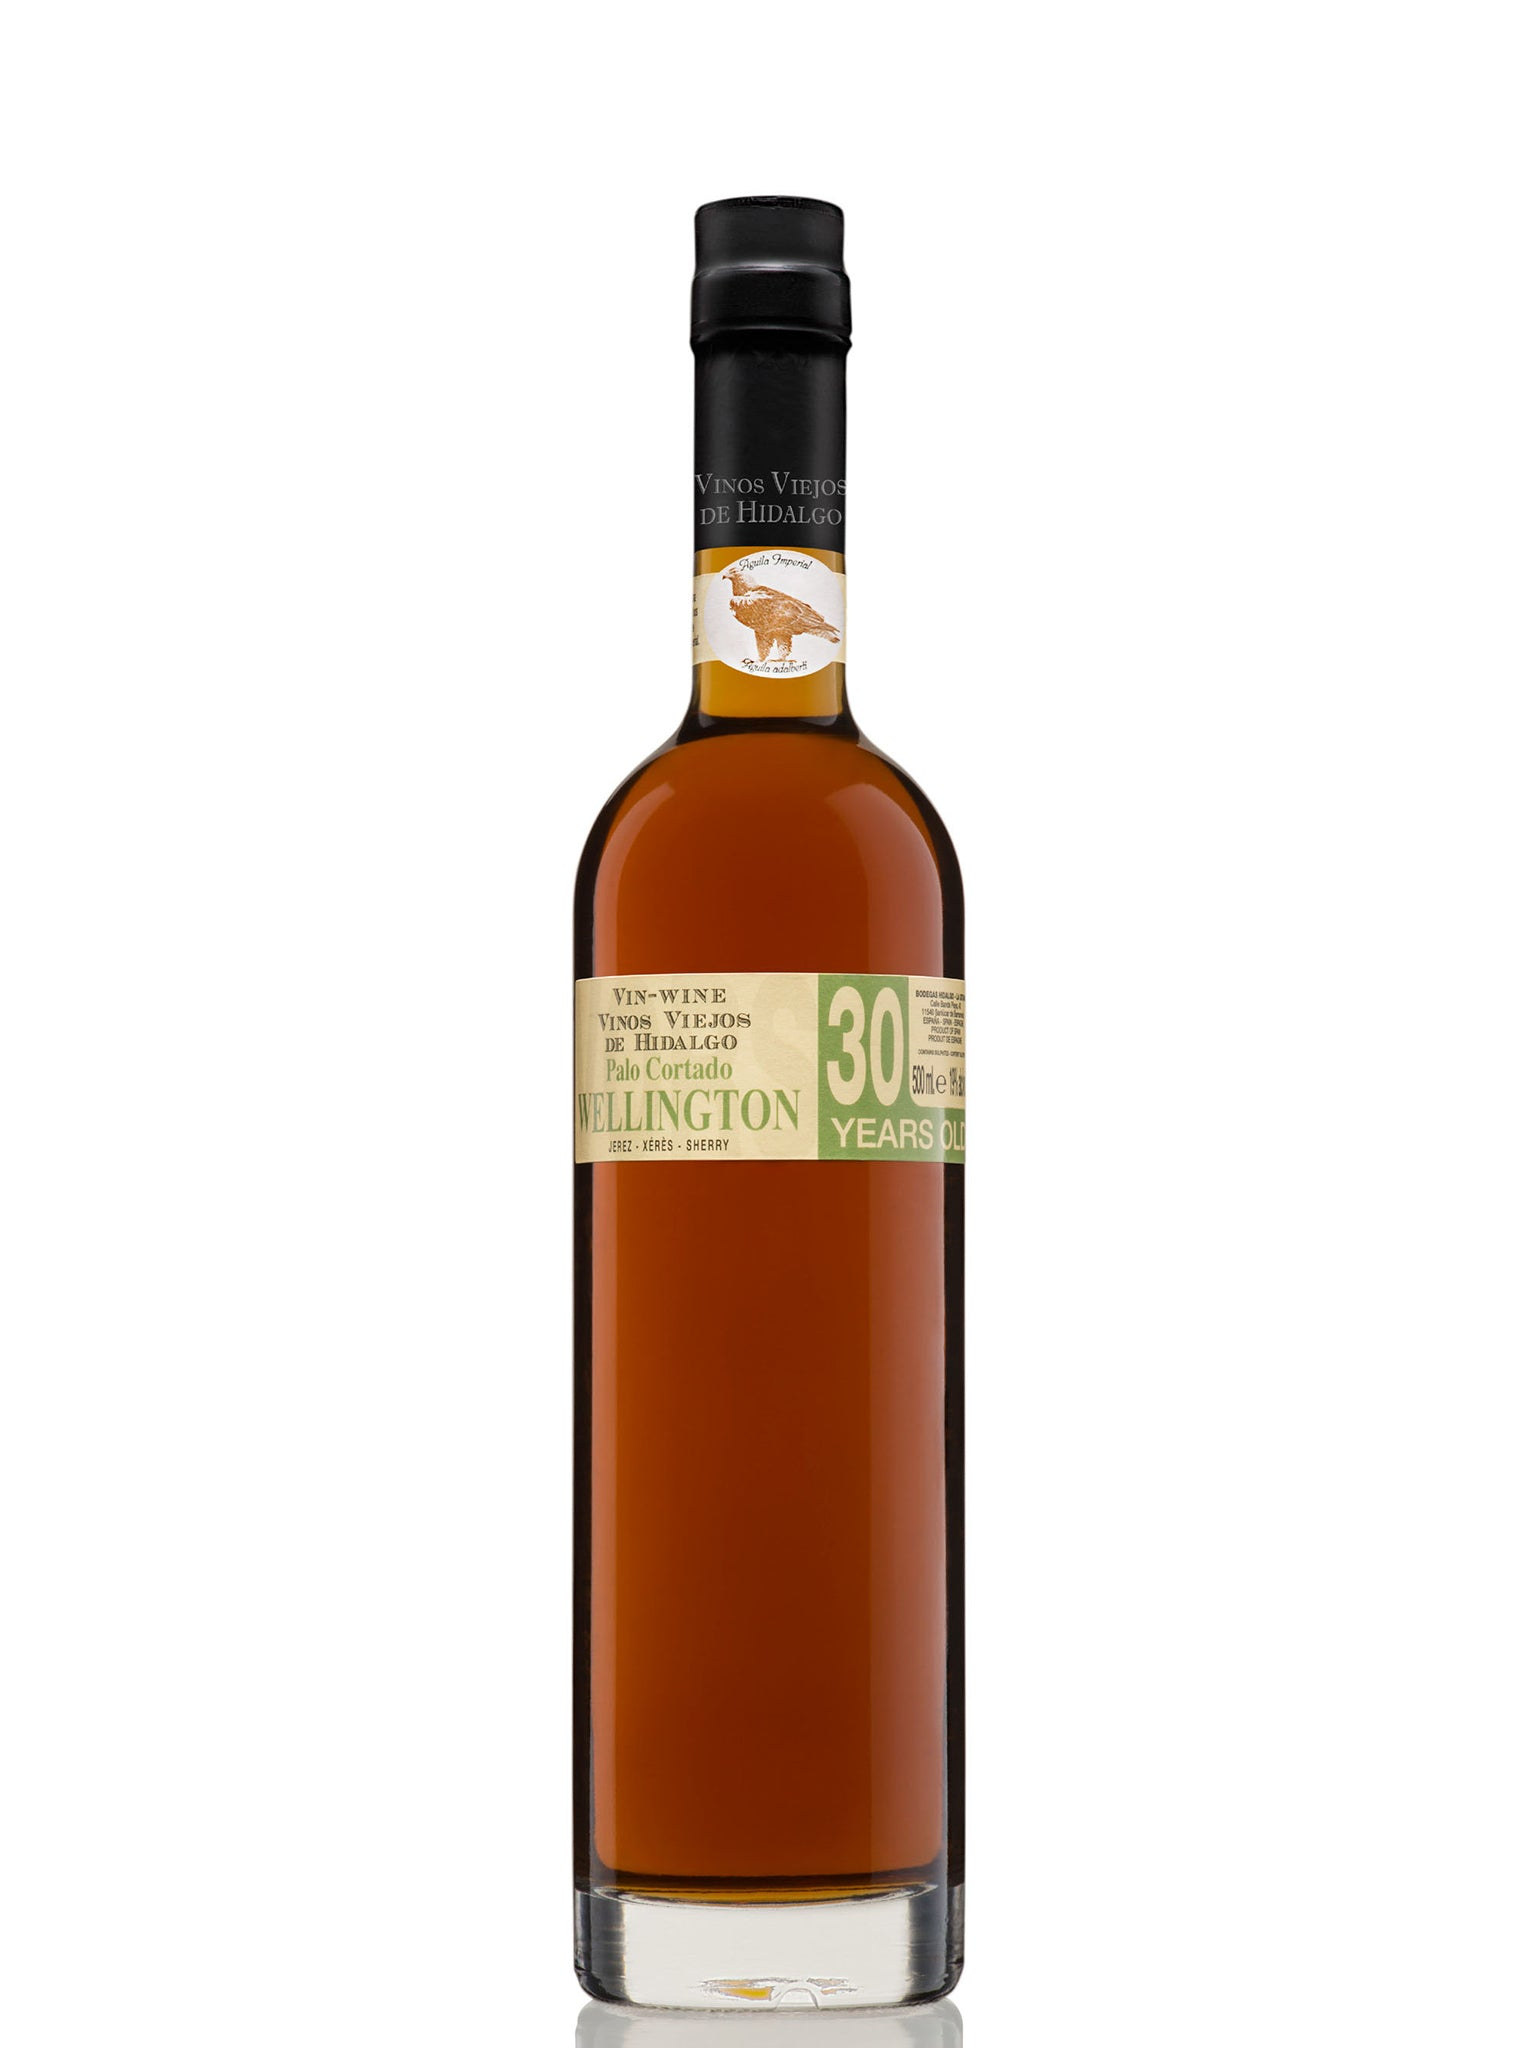 Hidalgo Wellington Palo Cortado VORS 30yrs 500ml 6pk